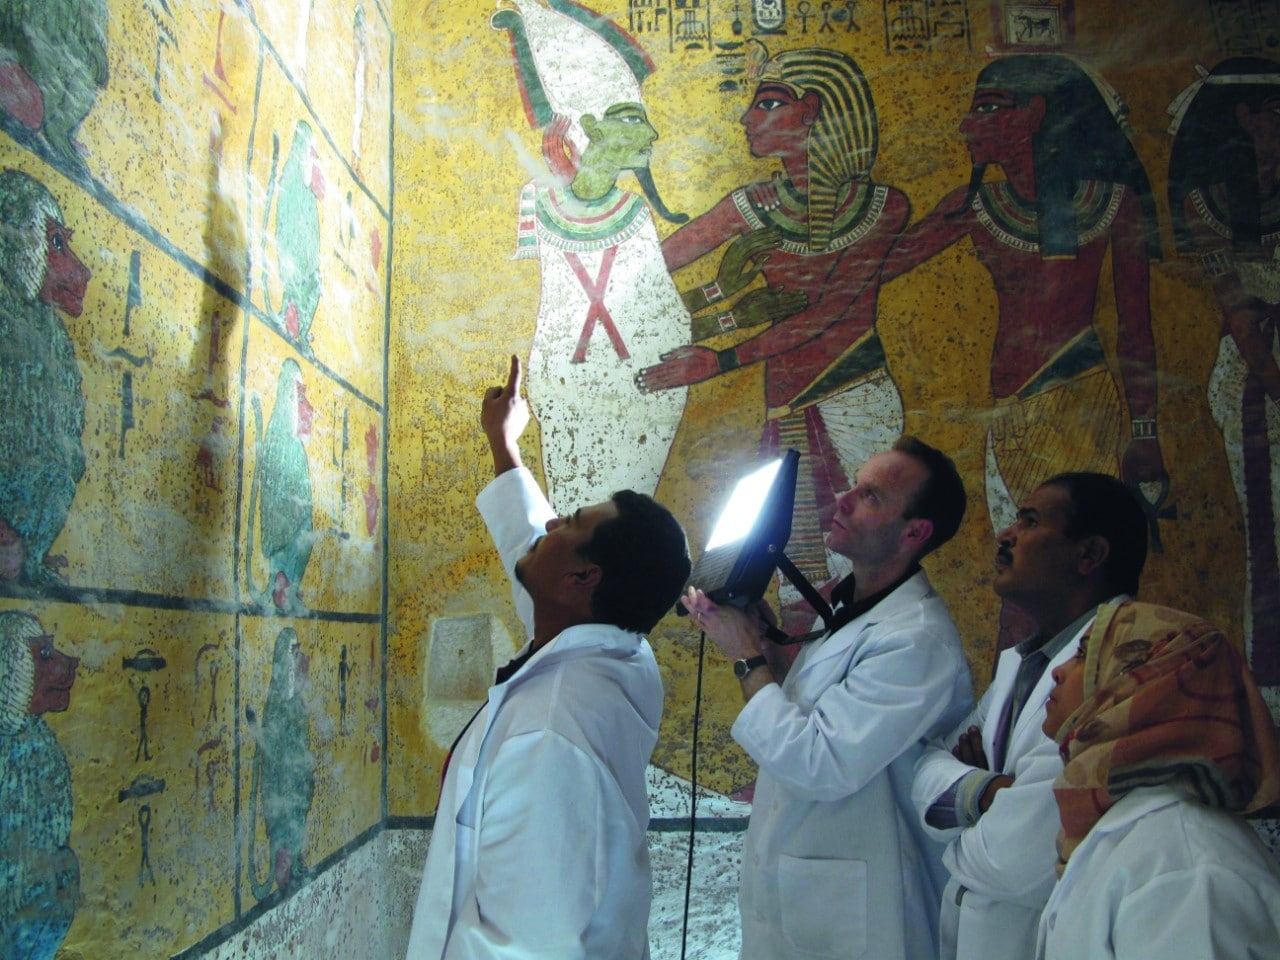 Four people in white lab coats - one pointing a large light at the wall - are looking at decoratively painted walls in the tomb of Tutankhamen.